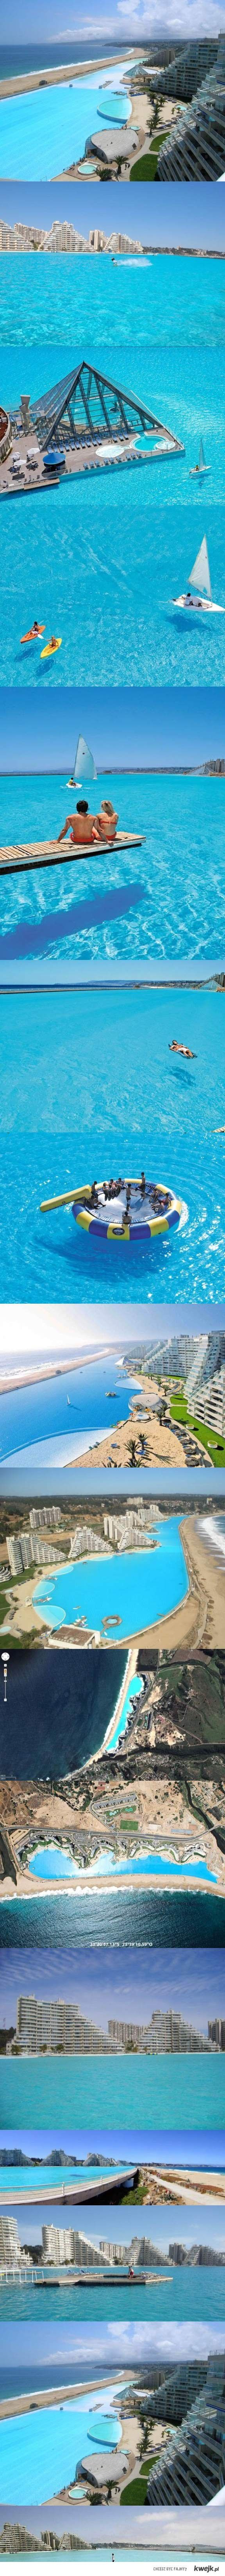 The largest swimming pool in the world, located in Chile, where you can sail, kayak, and swim ...